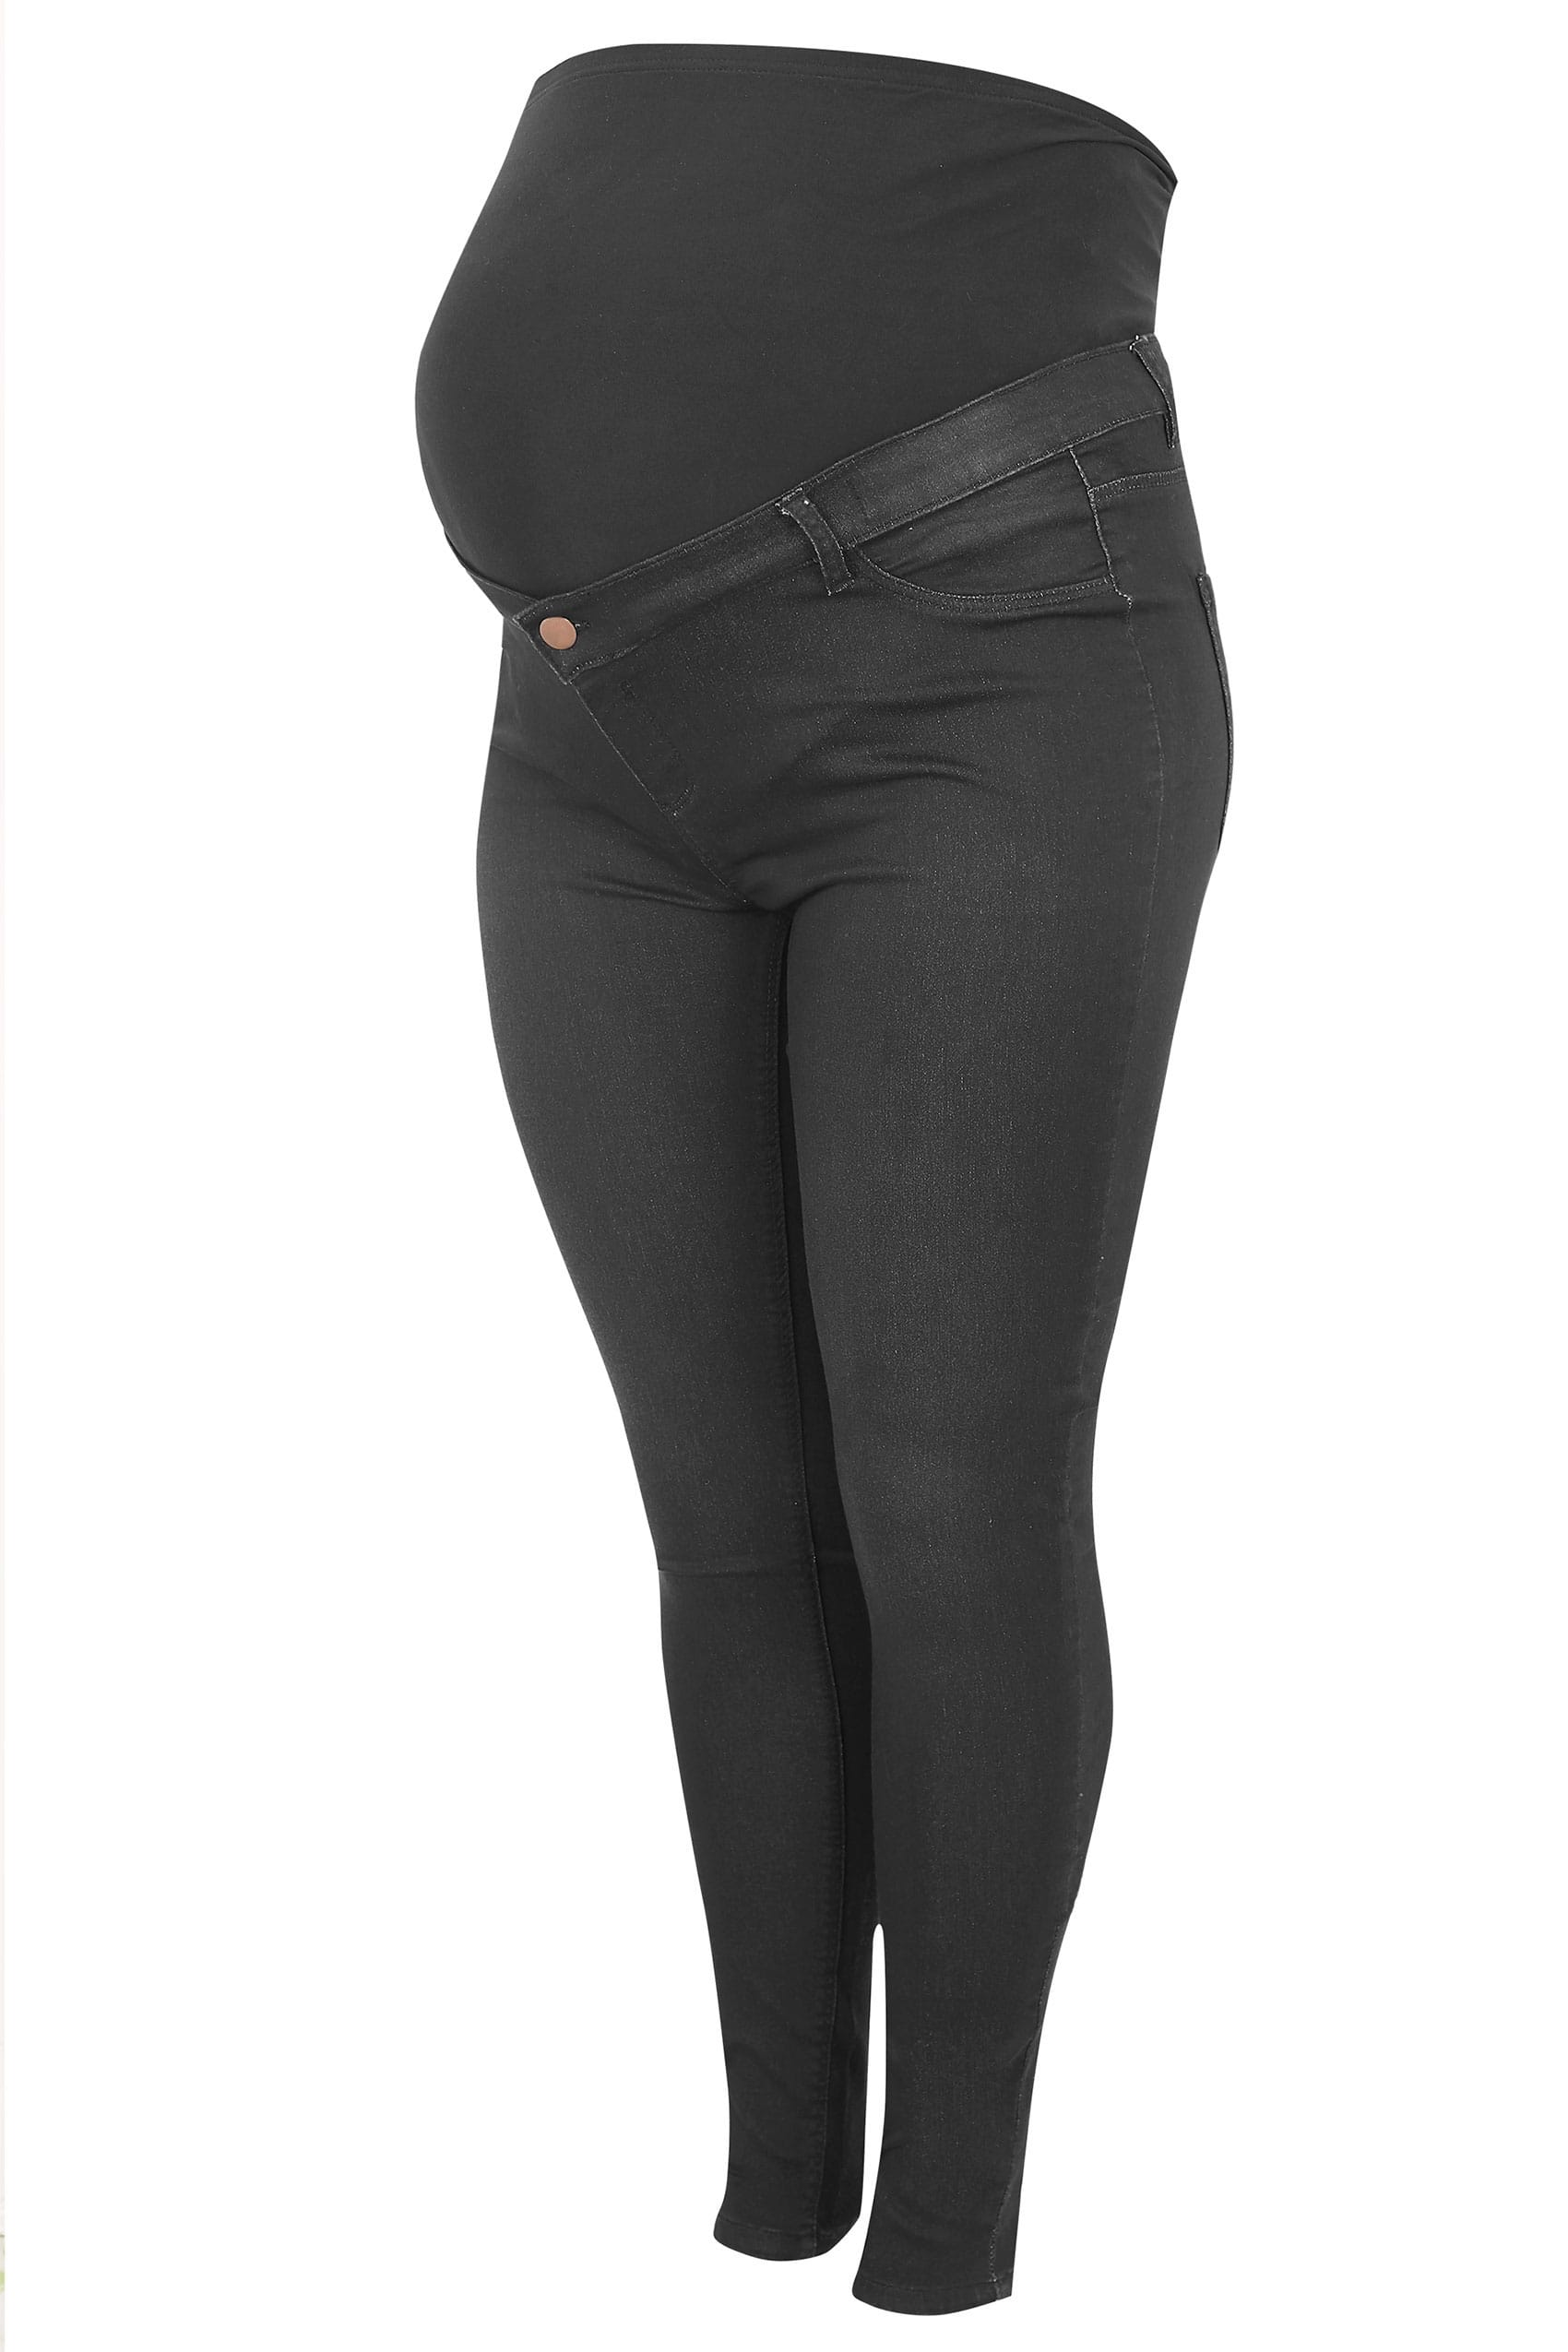 5f0e897e1fc88 BUMP IT UP MATERNITY Black Super Stretch Skinny Jeggings With Comfort Panel